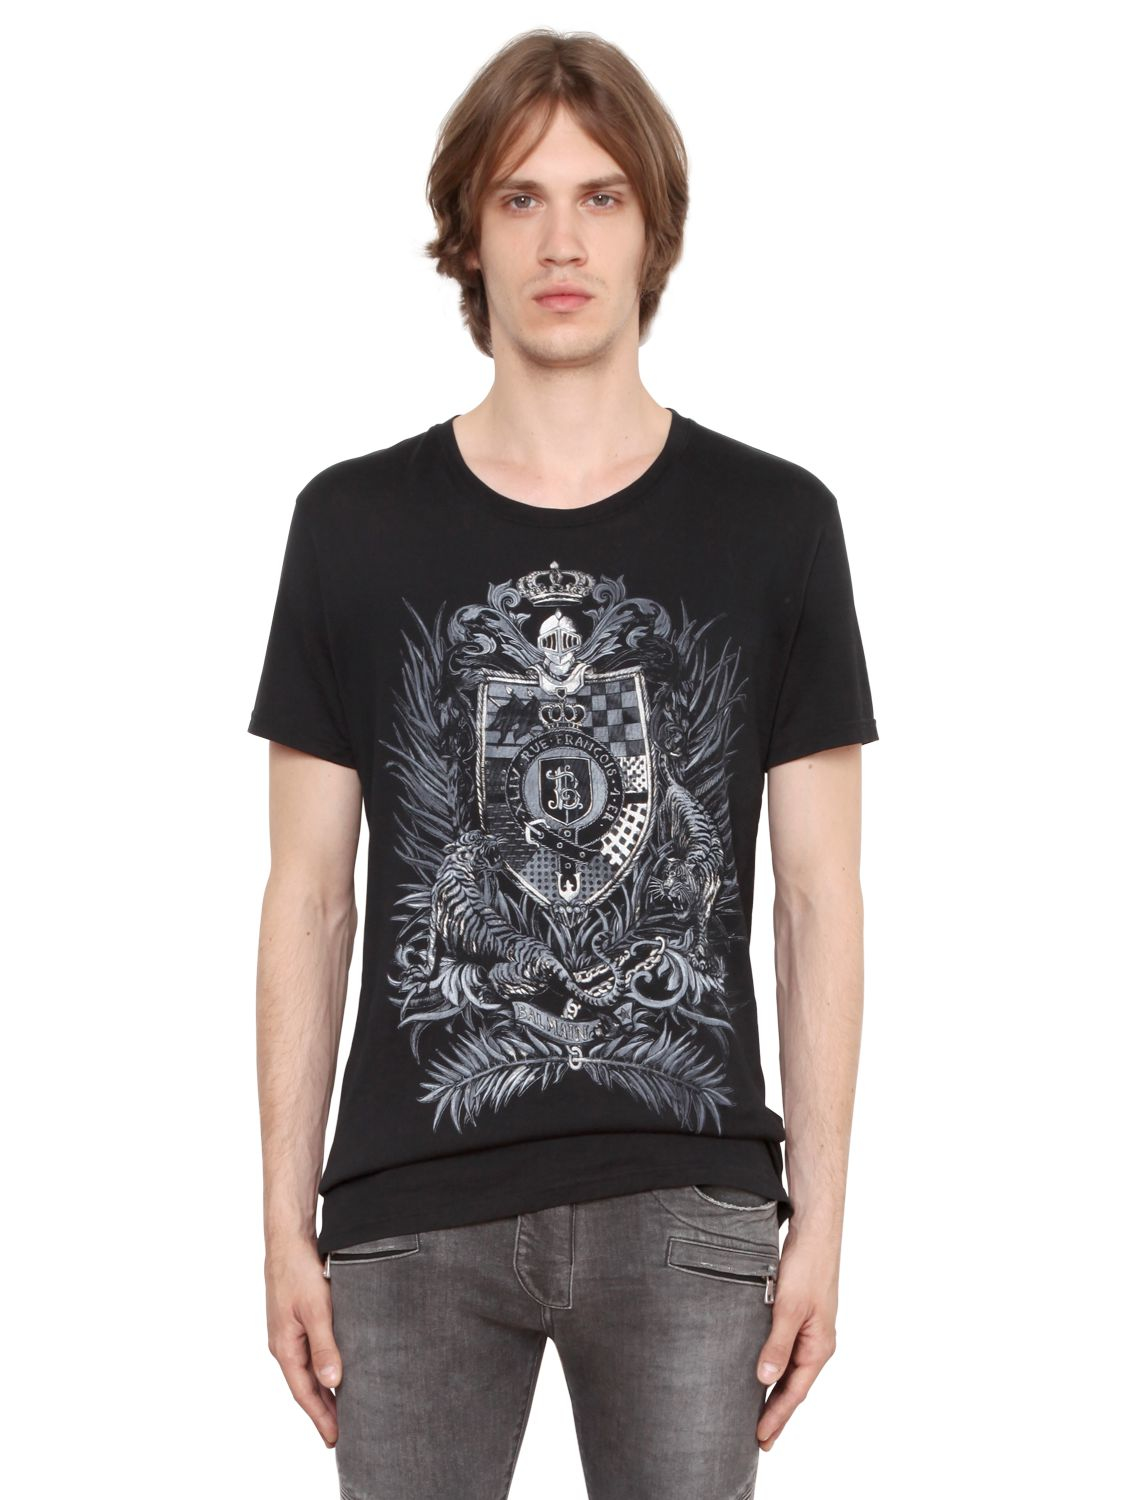 balmain crest printed cotton jersey t shirt in black for men lyst. Black Bedroom Furniture Sets. Home Design Ideas